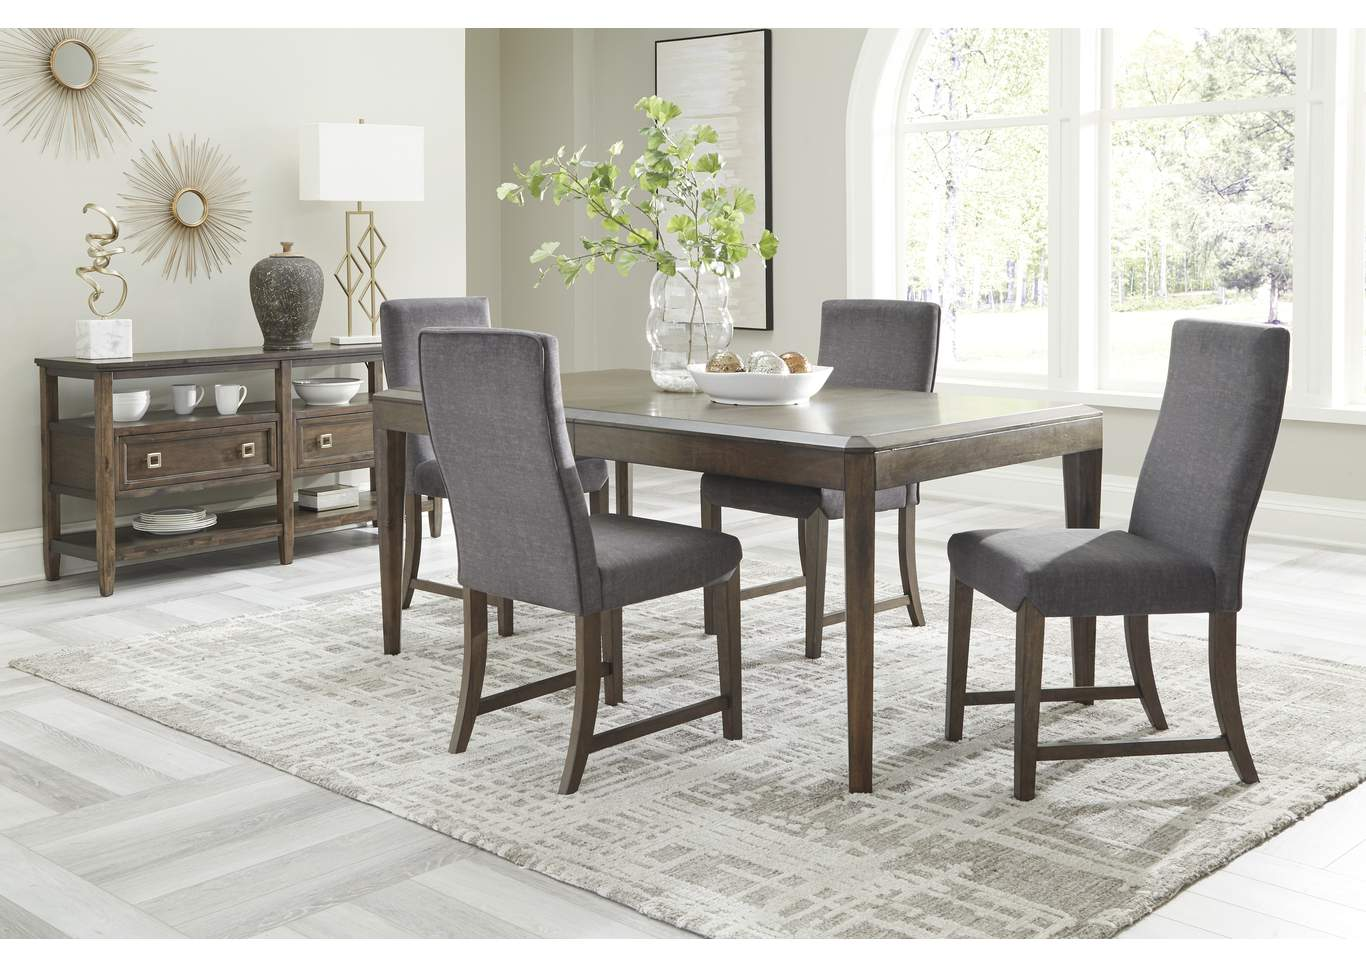 Raehurst 5-Piece Dining Table and Chairs,Ashley